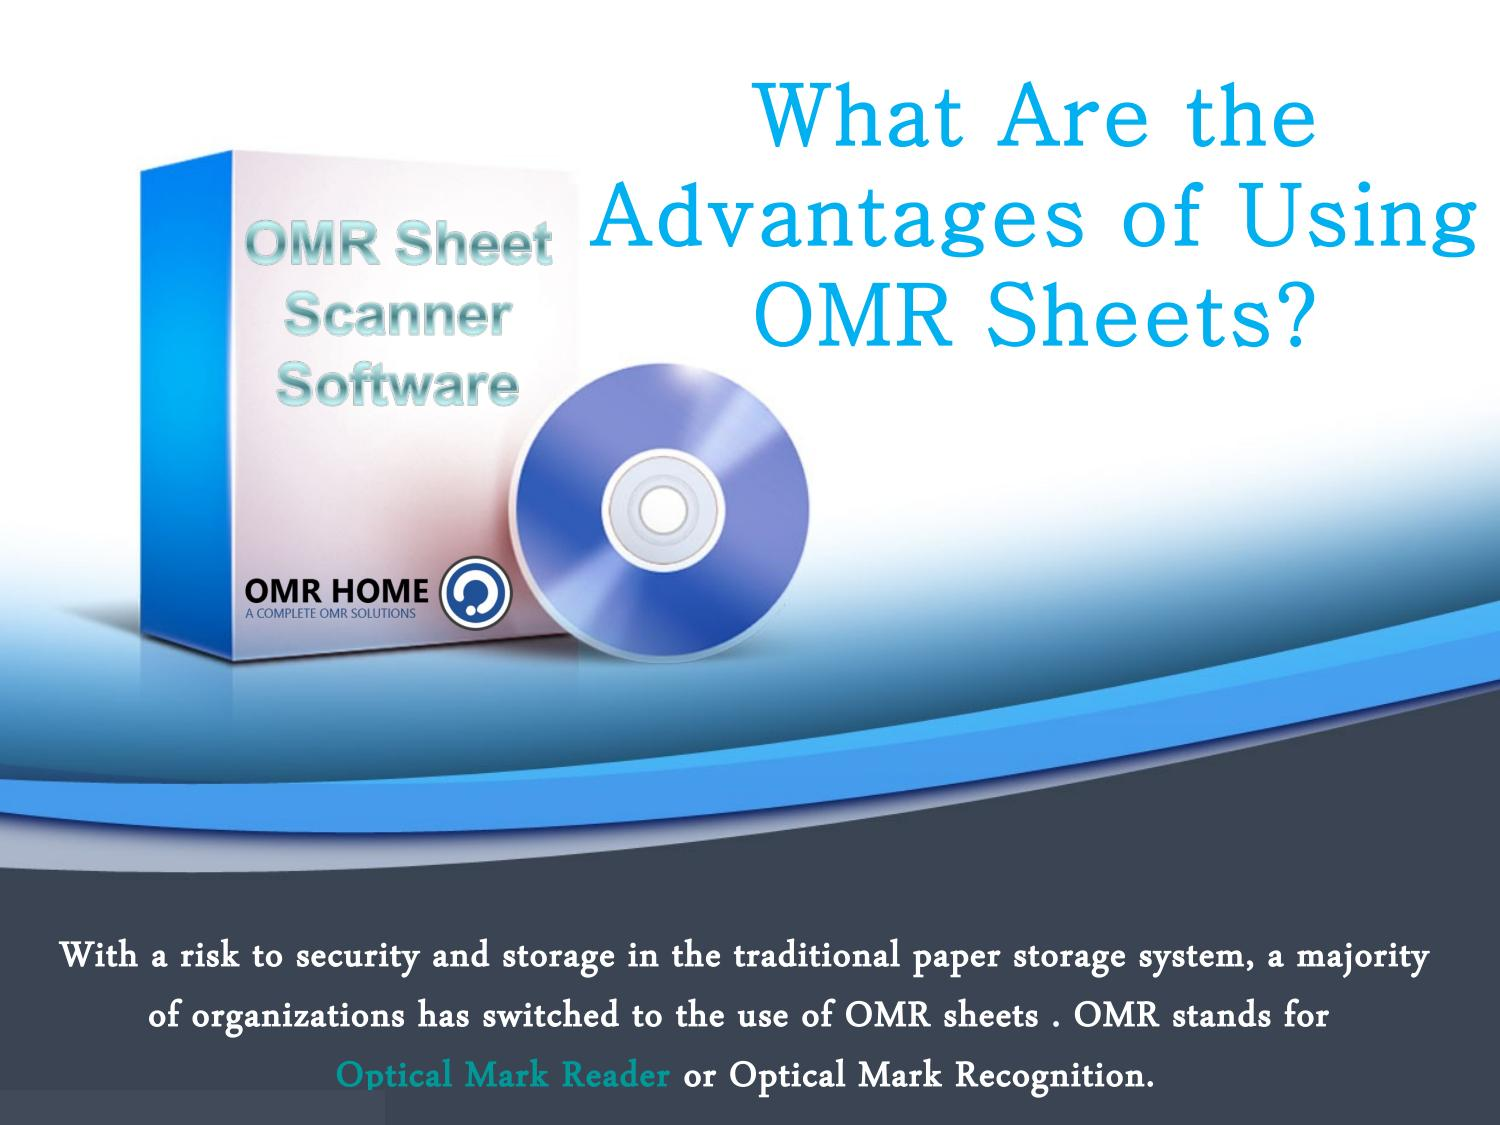 Advantages Of Using Omr Sheets By OMRHome